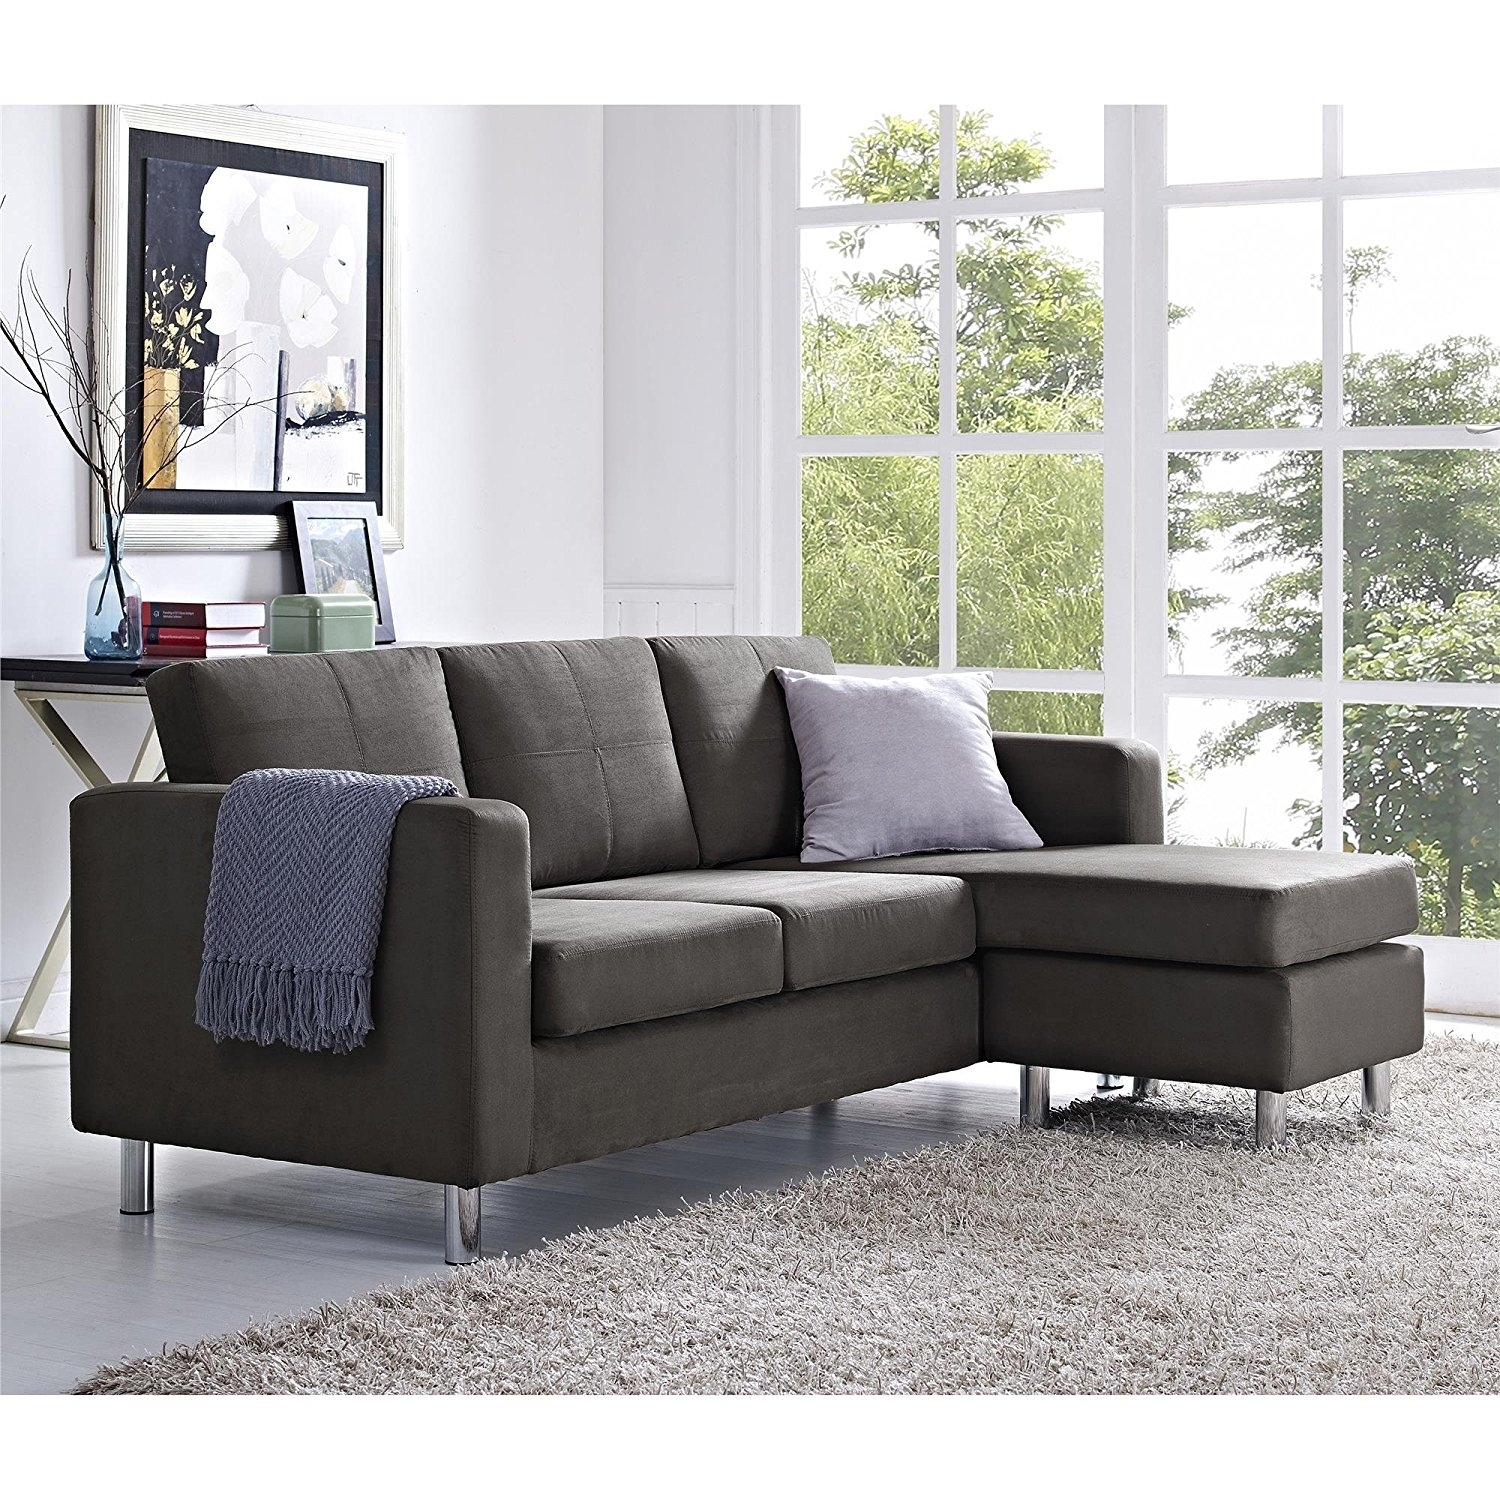 Sectional Sofa Design: Small Sectional Sofas For Small Spaces Curved Intended For Sectional Sofas For Small Spaces (View 10 of 15)